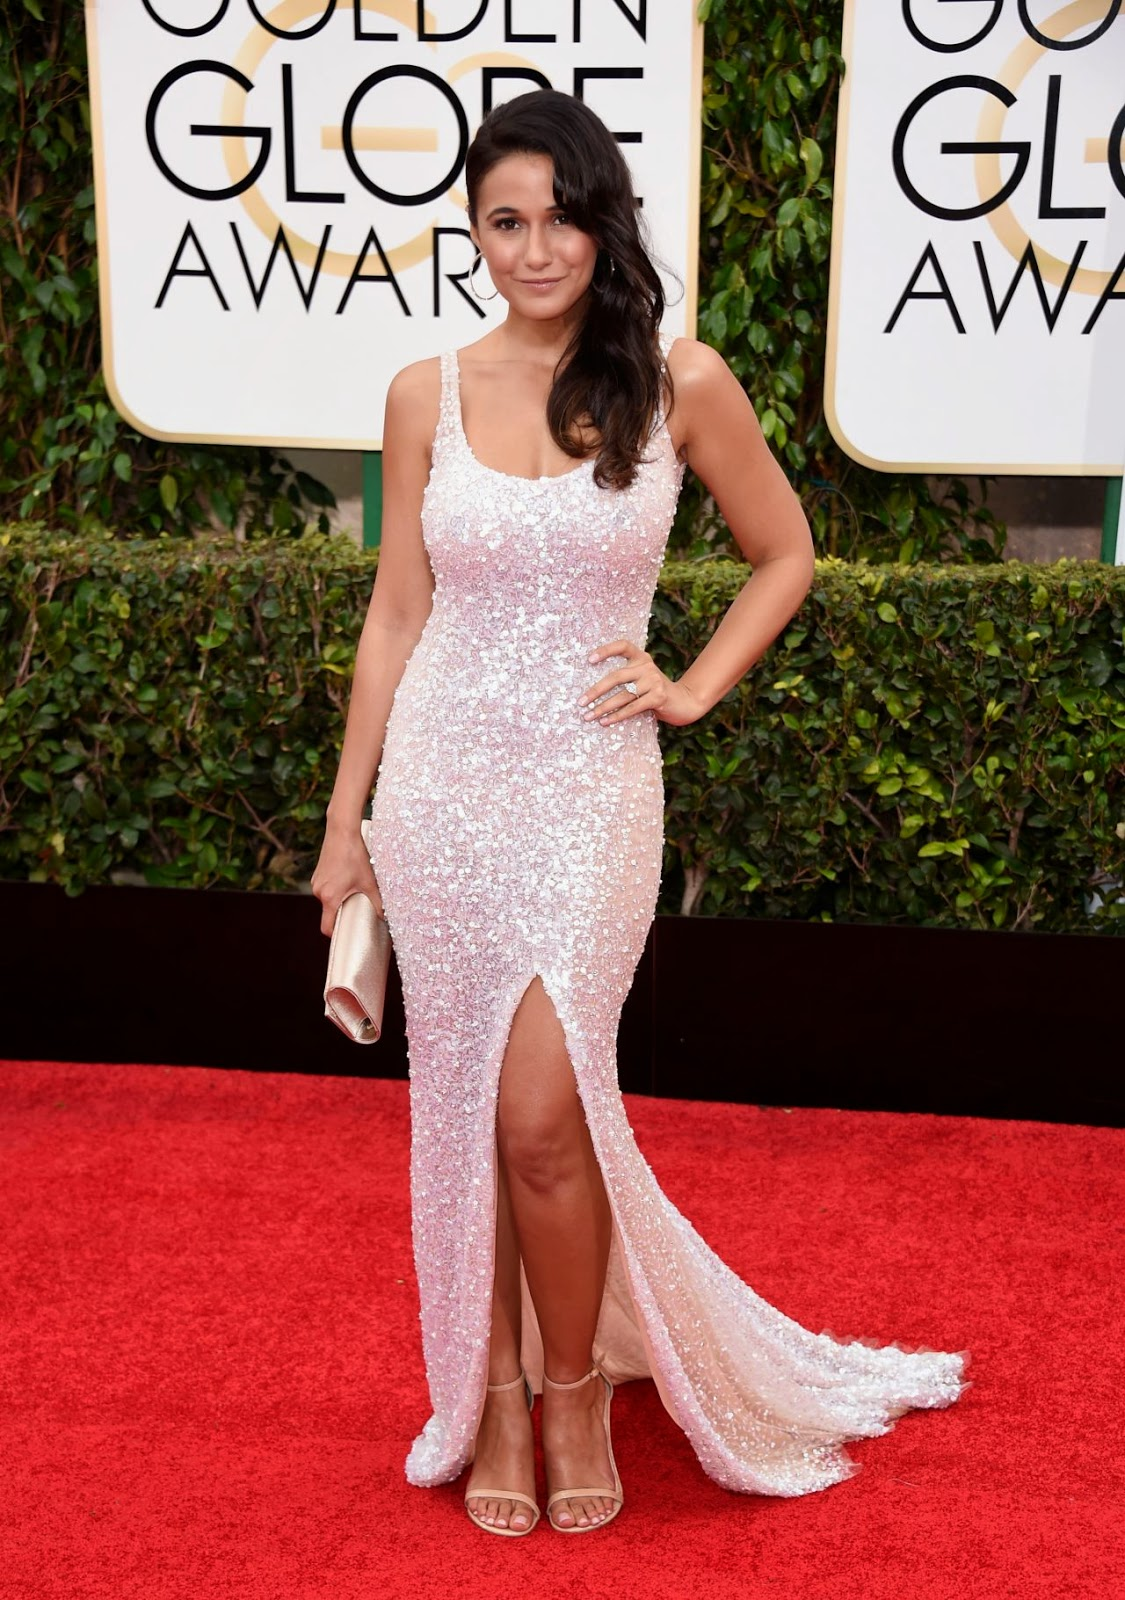 Emmanuelle Chriqui stuns in a curve-hugging sequined gown at the 2015 Golden Globes